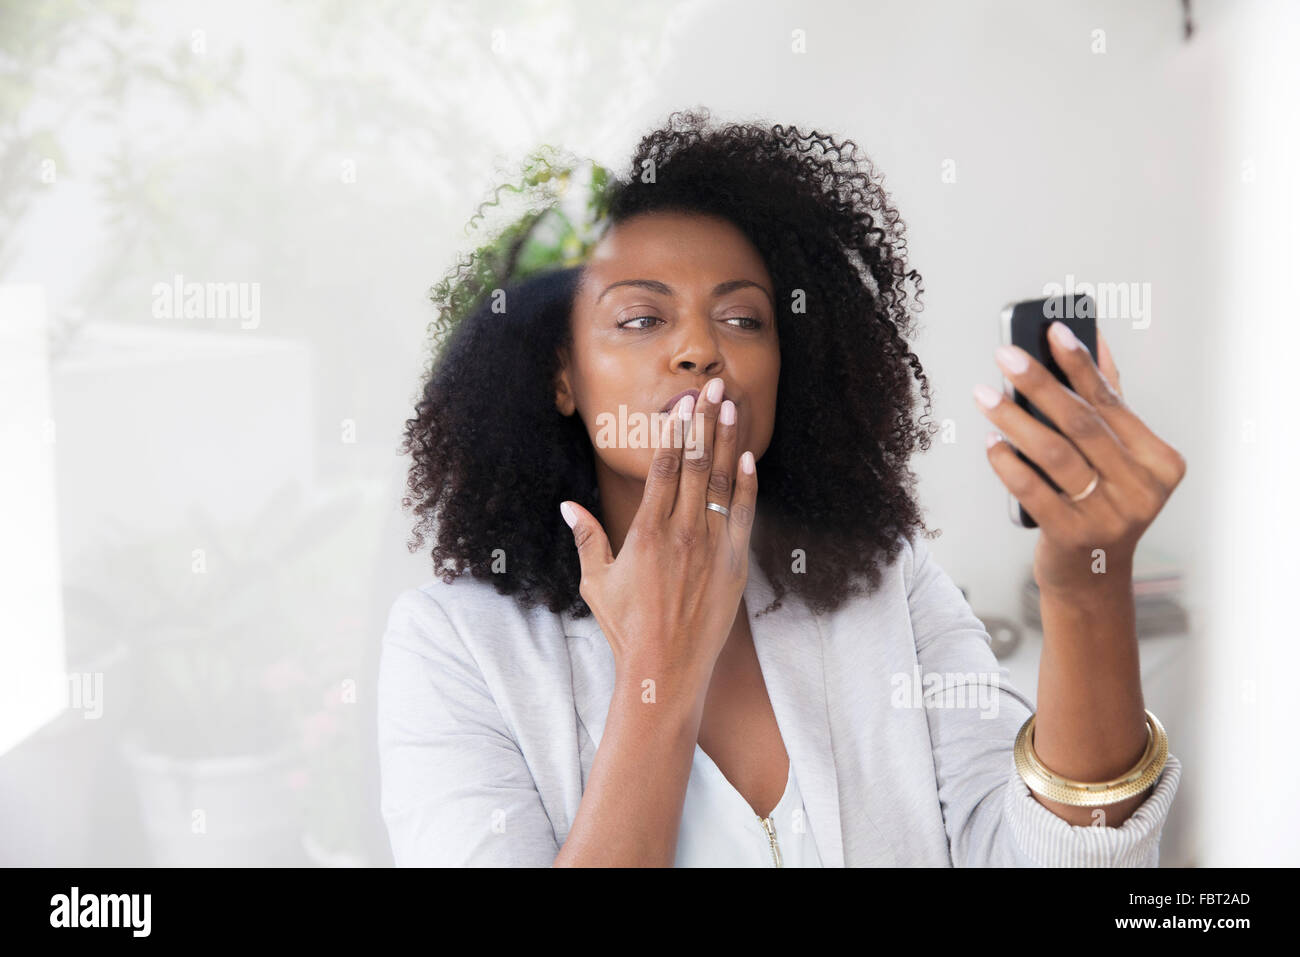 Woman blowing kiss at smartphone while doing video chat - Stock Image